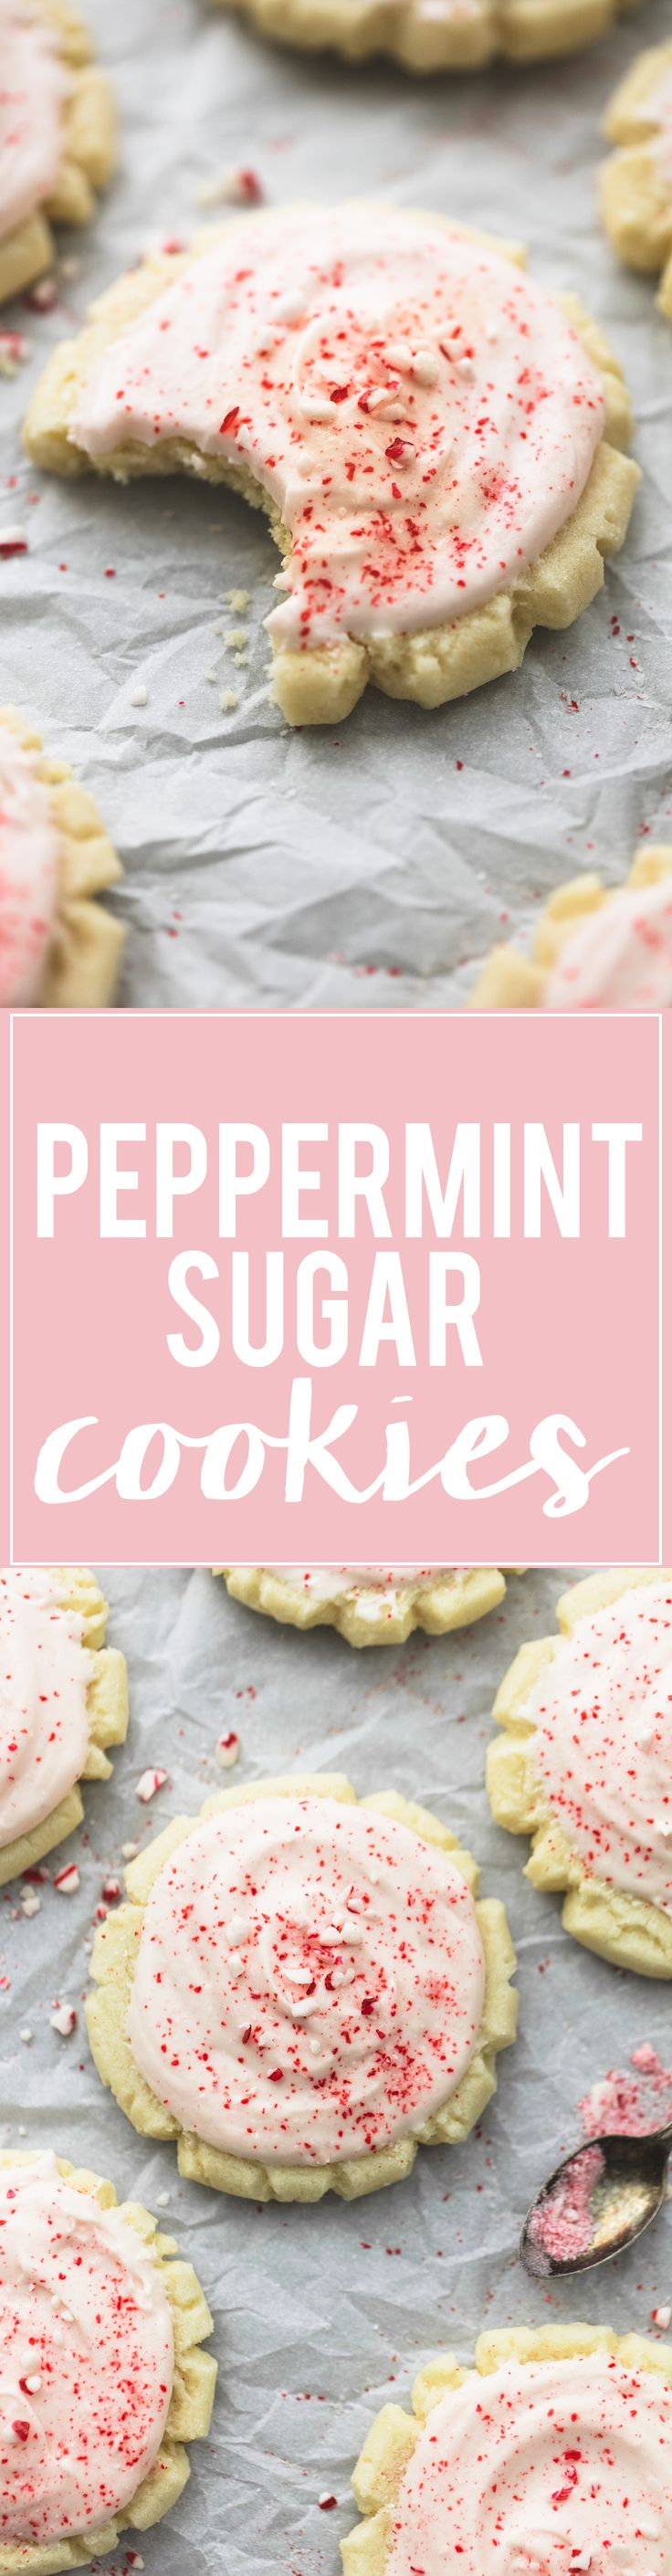 Super Soft Peppermint Sugar Cookies with fluffy and creamy peppermint frosting are easy to make without cookie cutters and no chilling time! | lecremedelacrumb.com